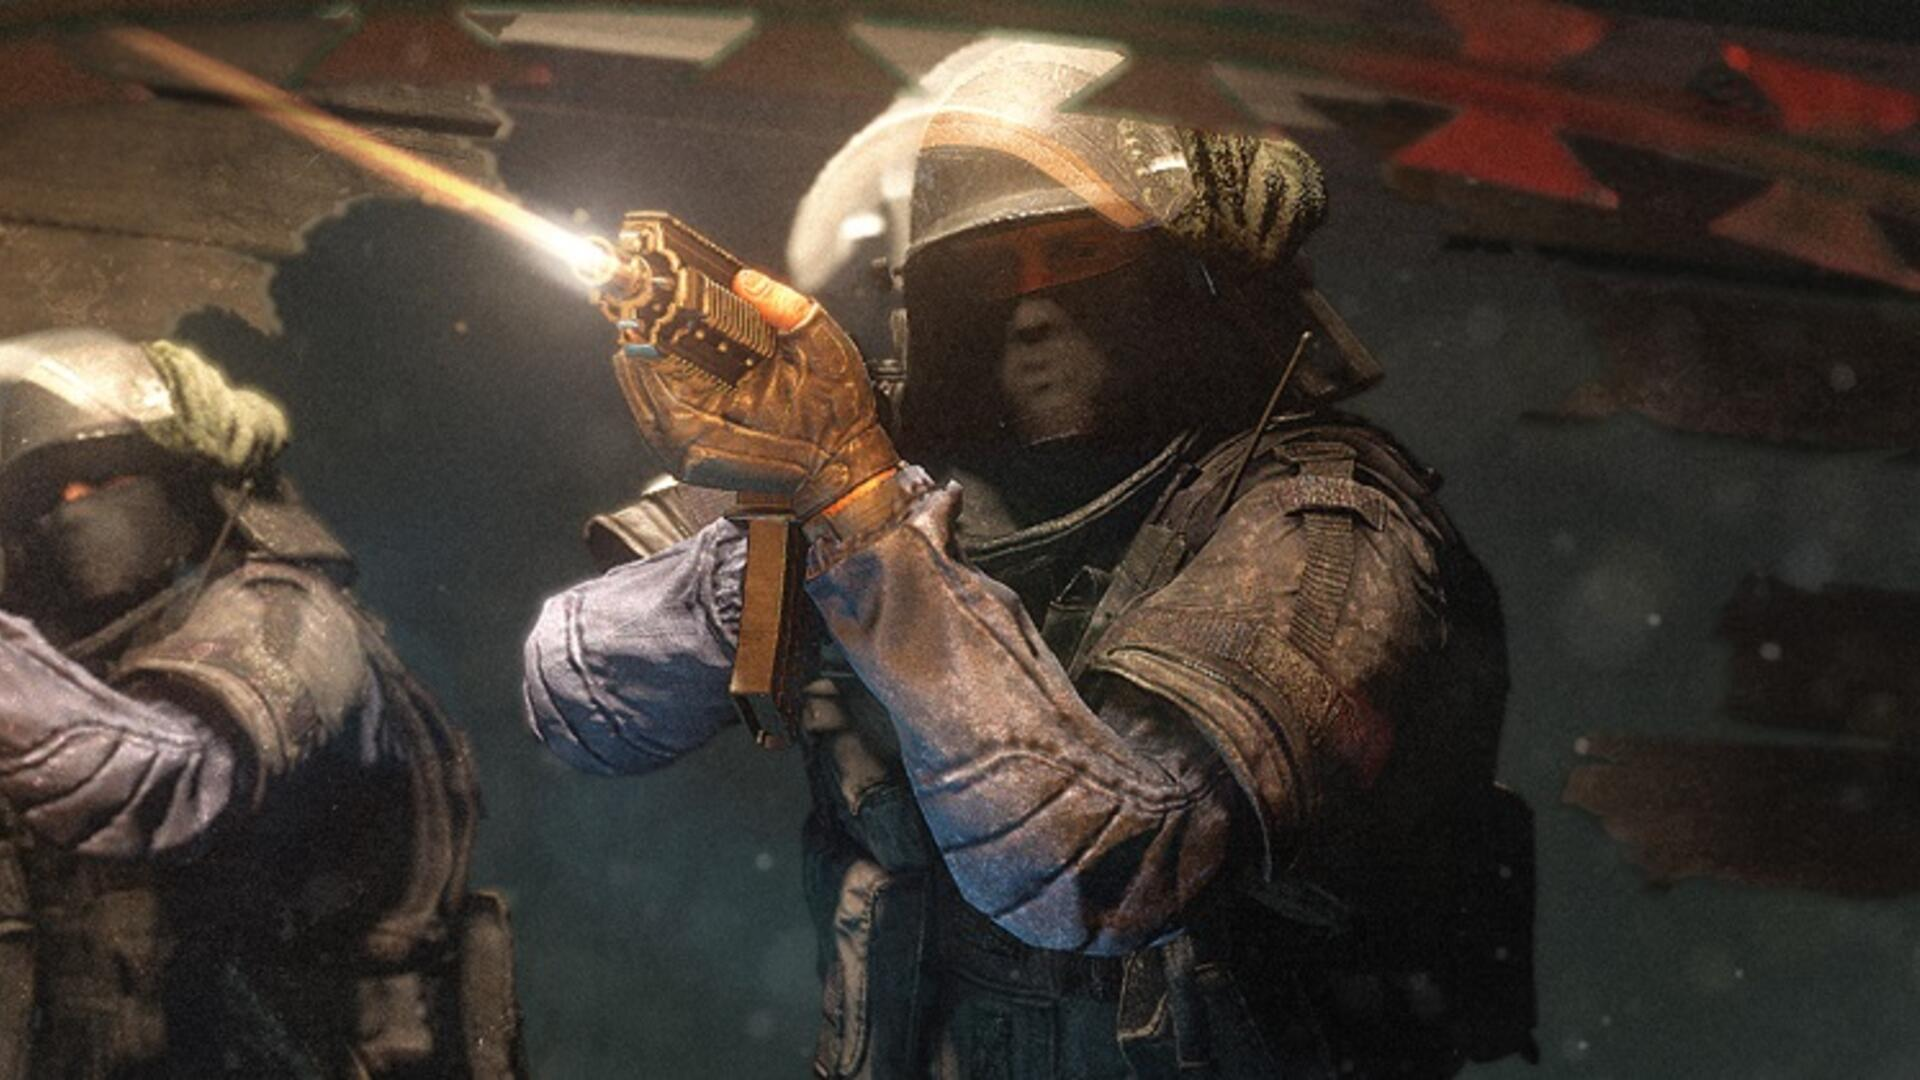 Rainbow 6 Siege: How to Earn More Renown | USgamer